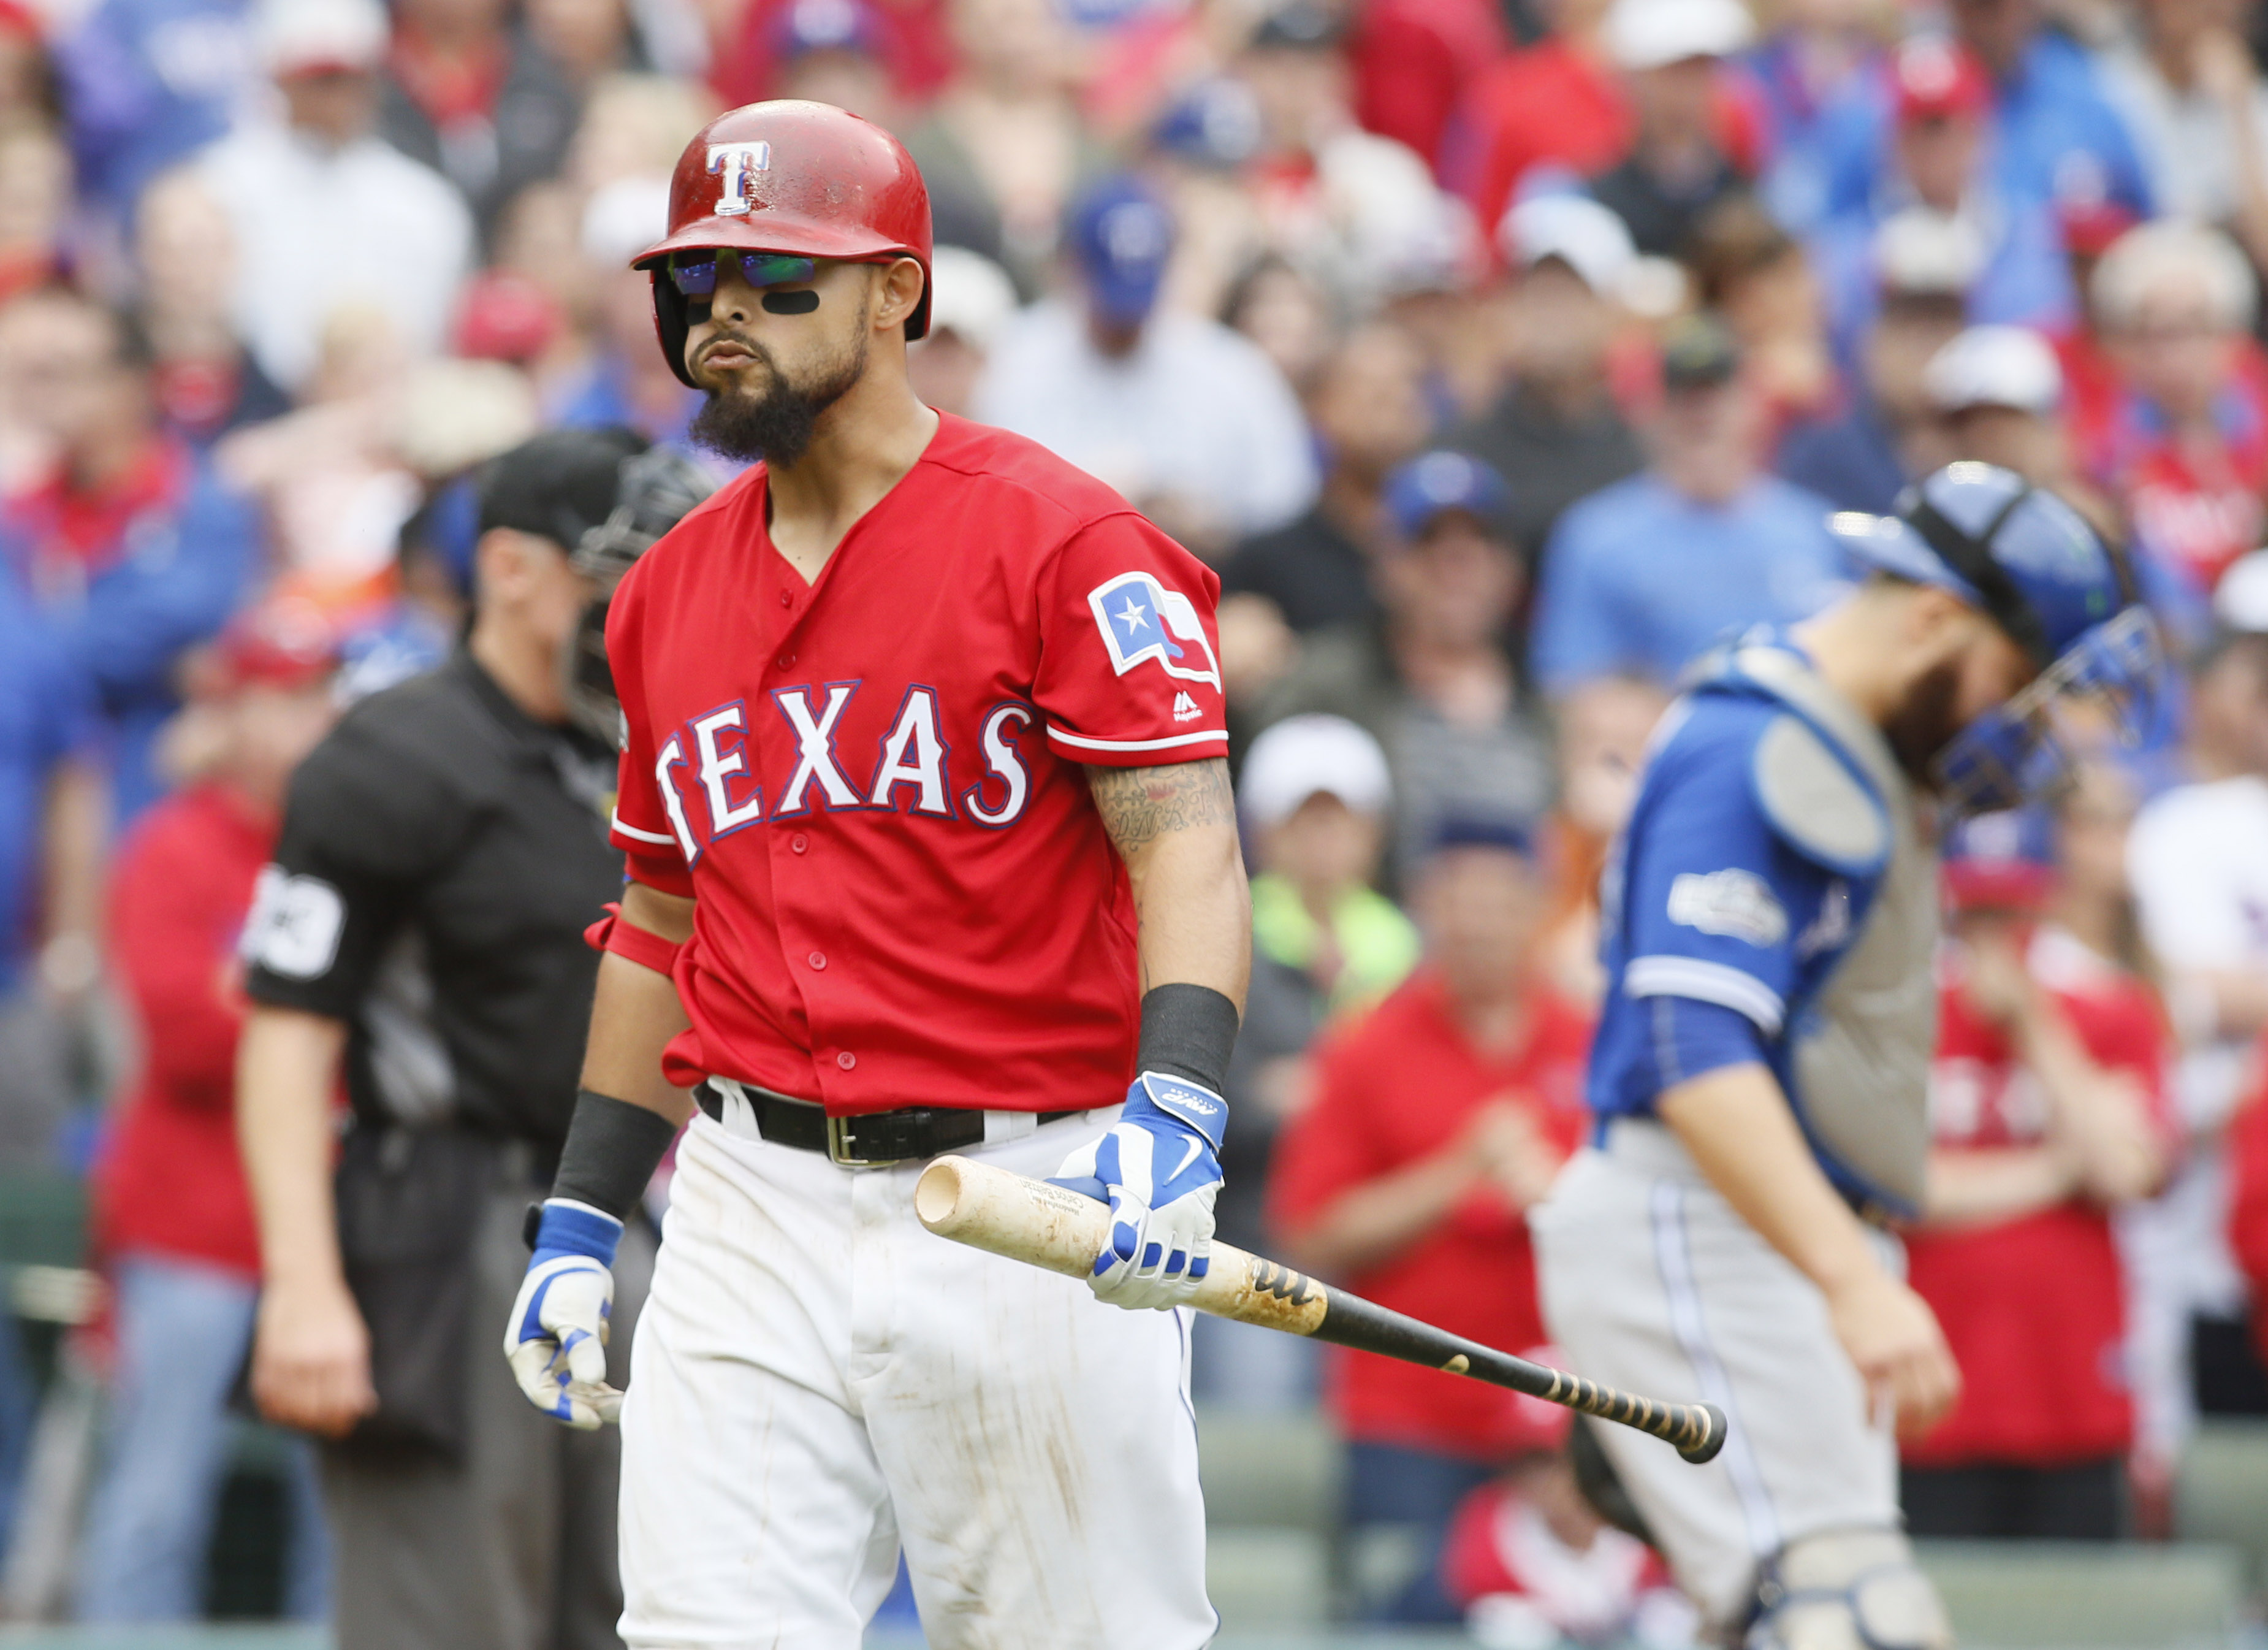 MLB: Top 5 Worst Uniforms in Major League Baseball Right Now